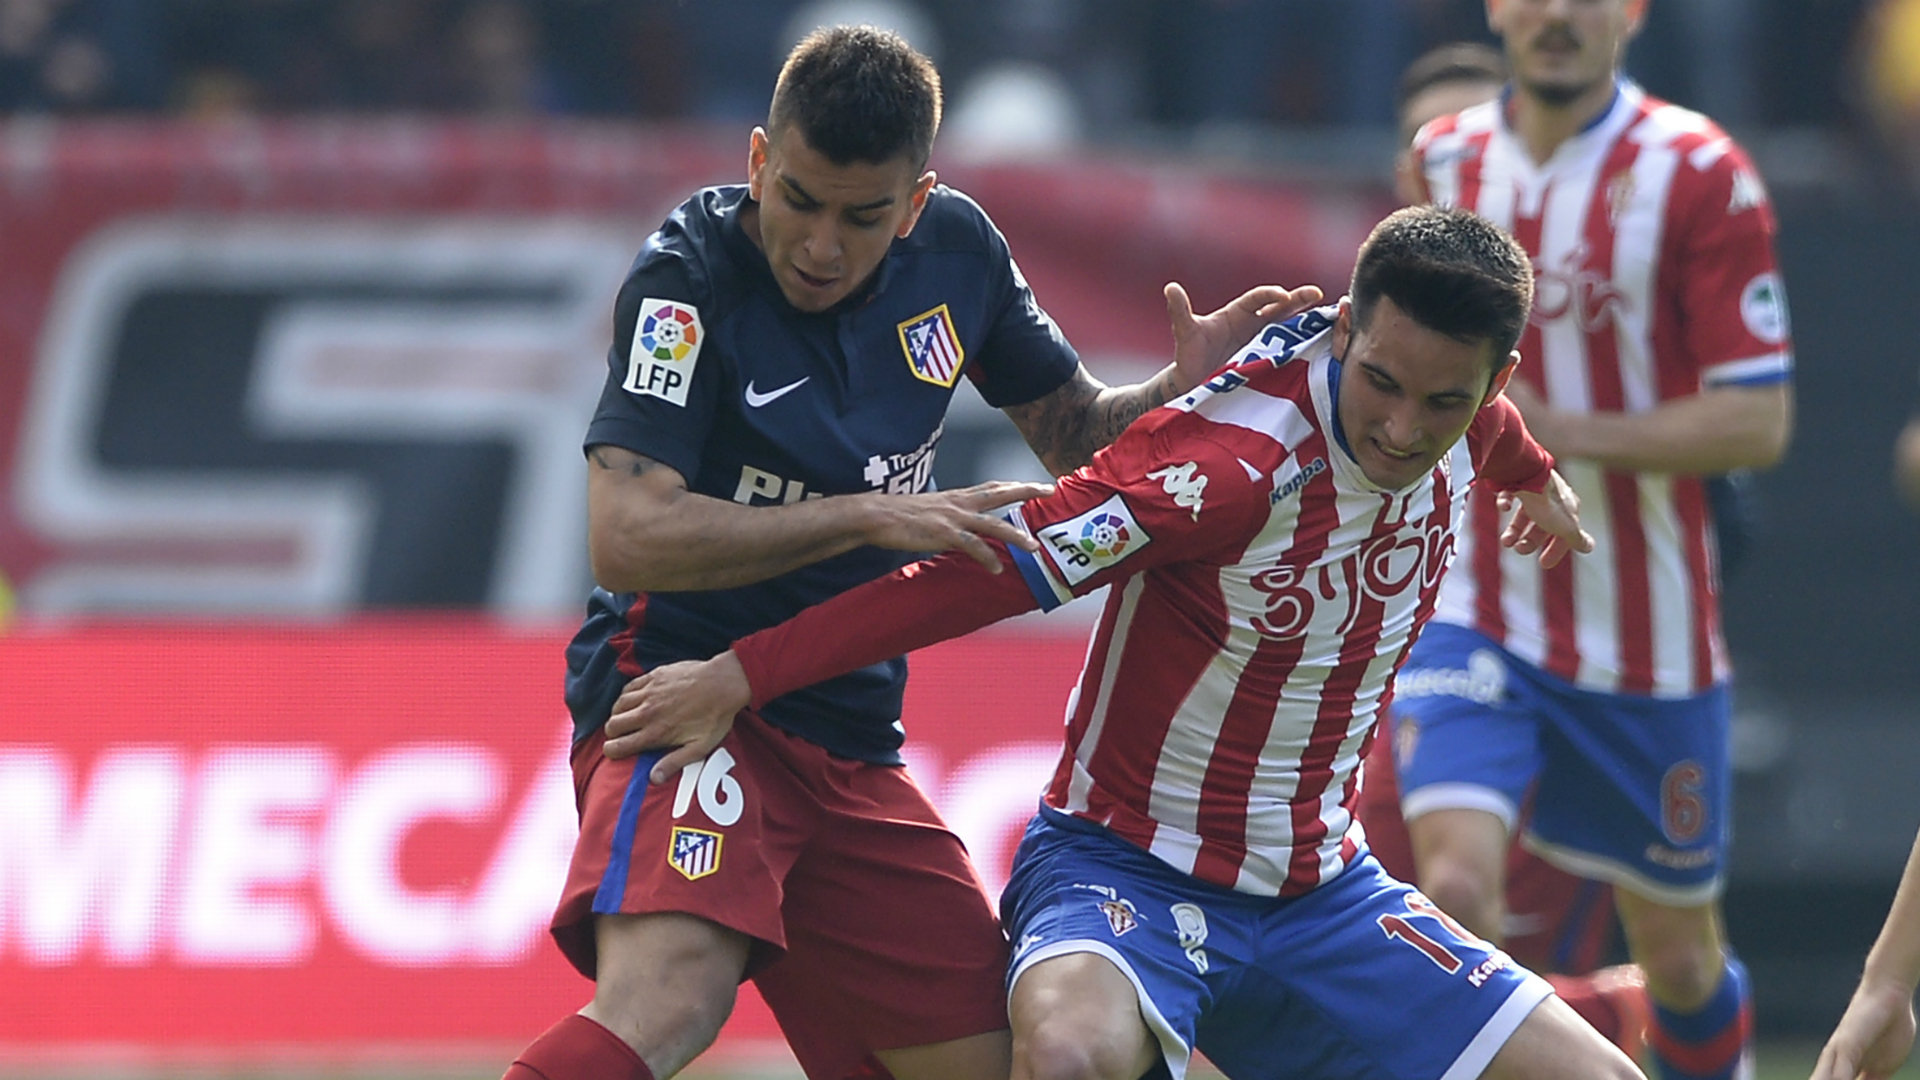 Video: Sporting Gijon vs Atletico Madrid